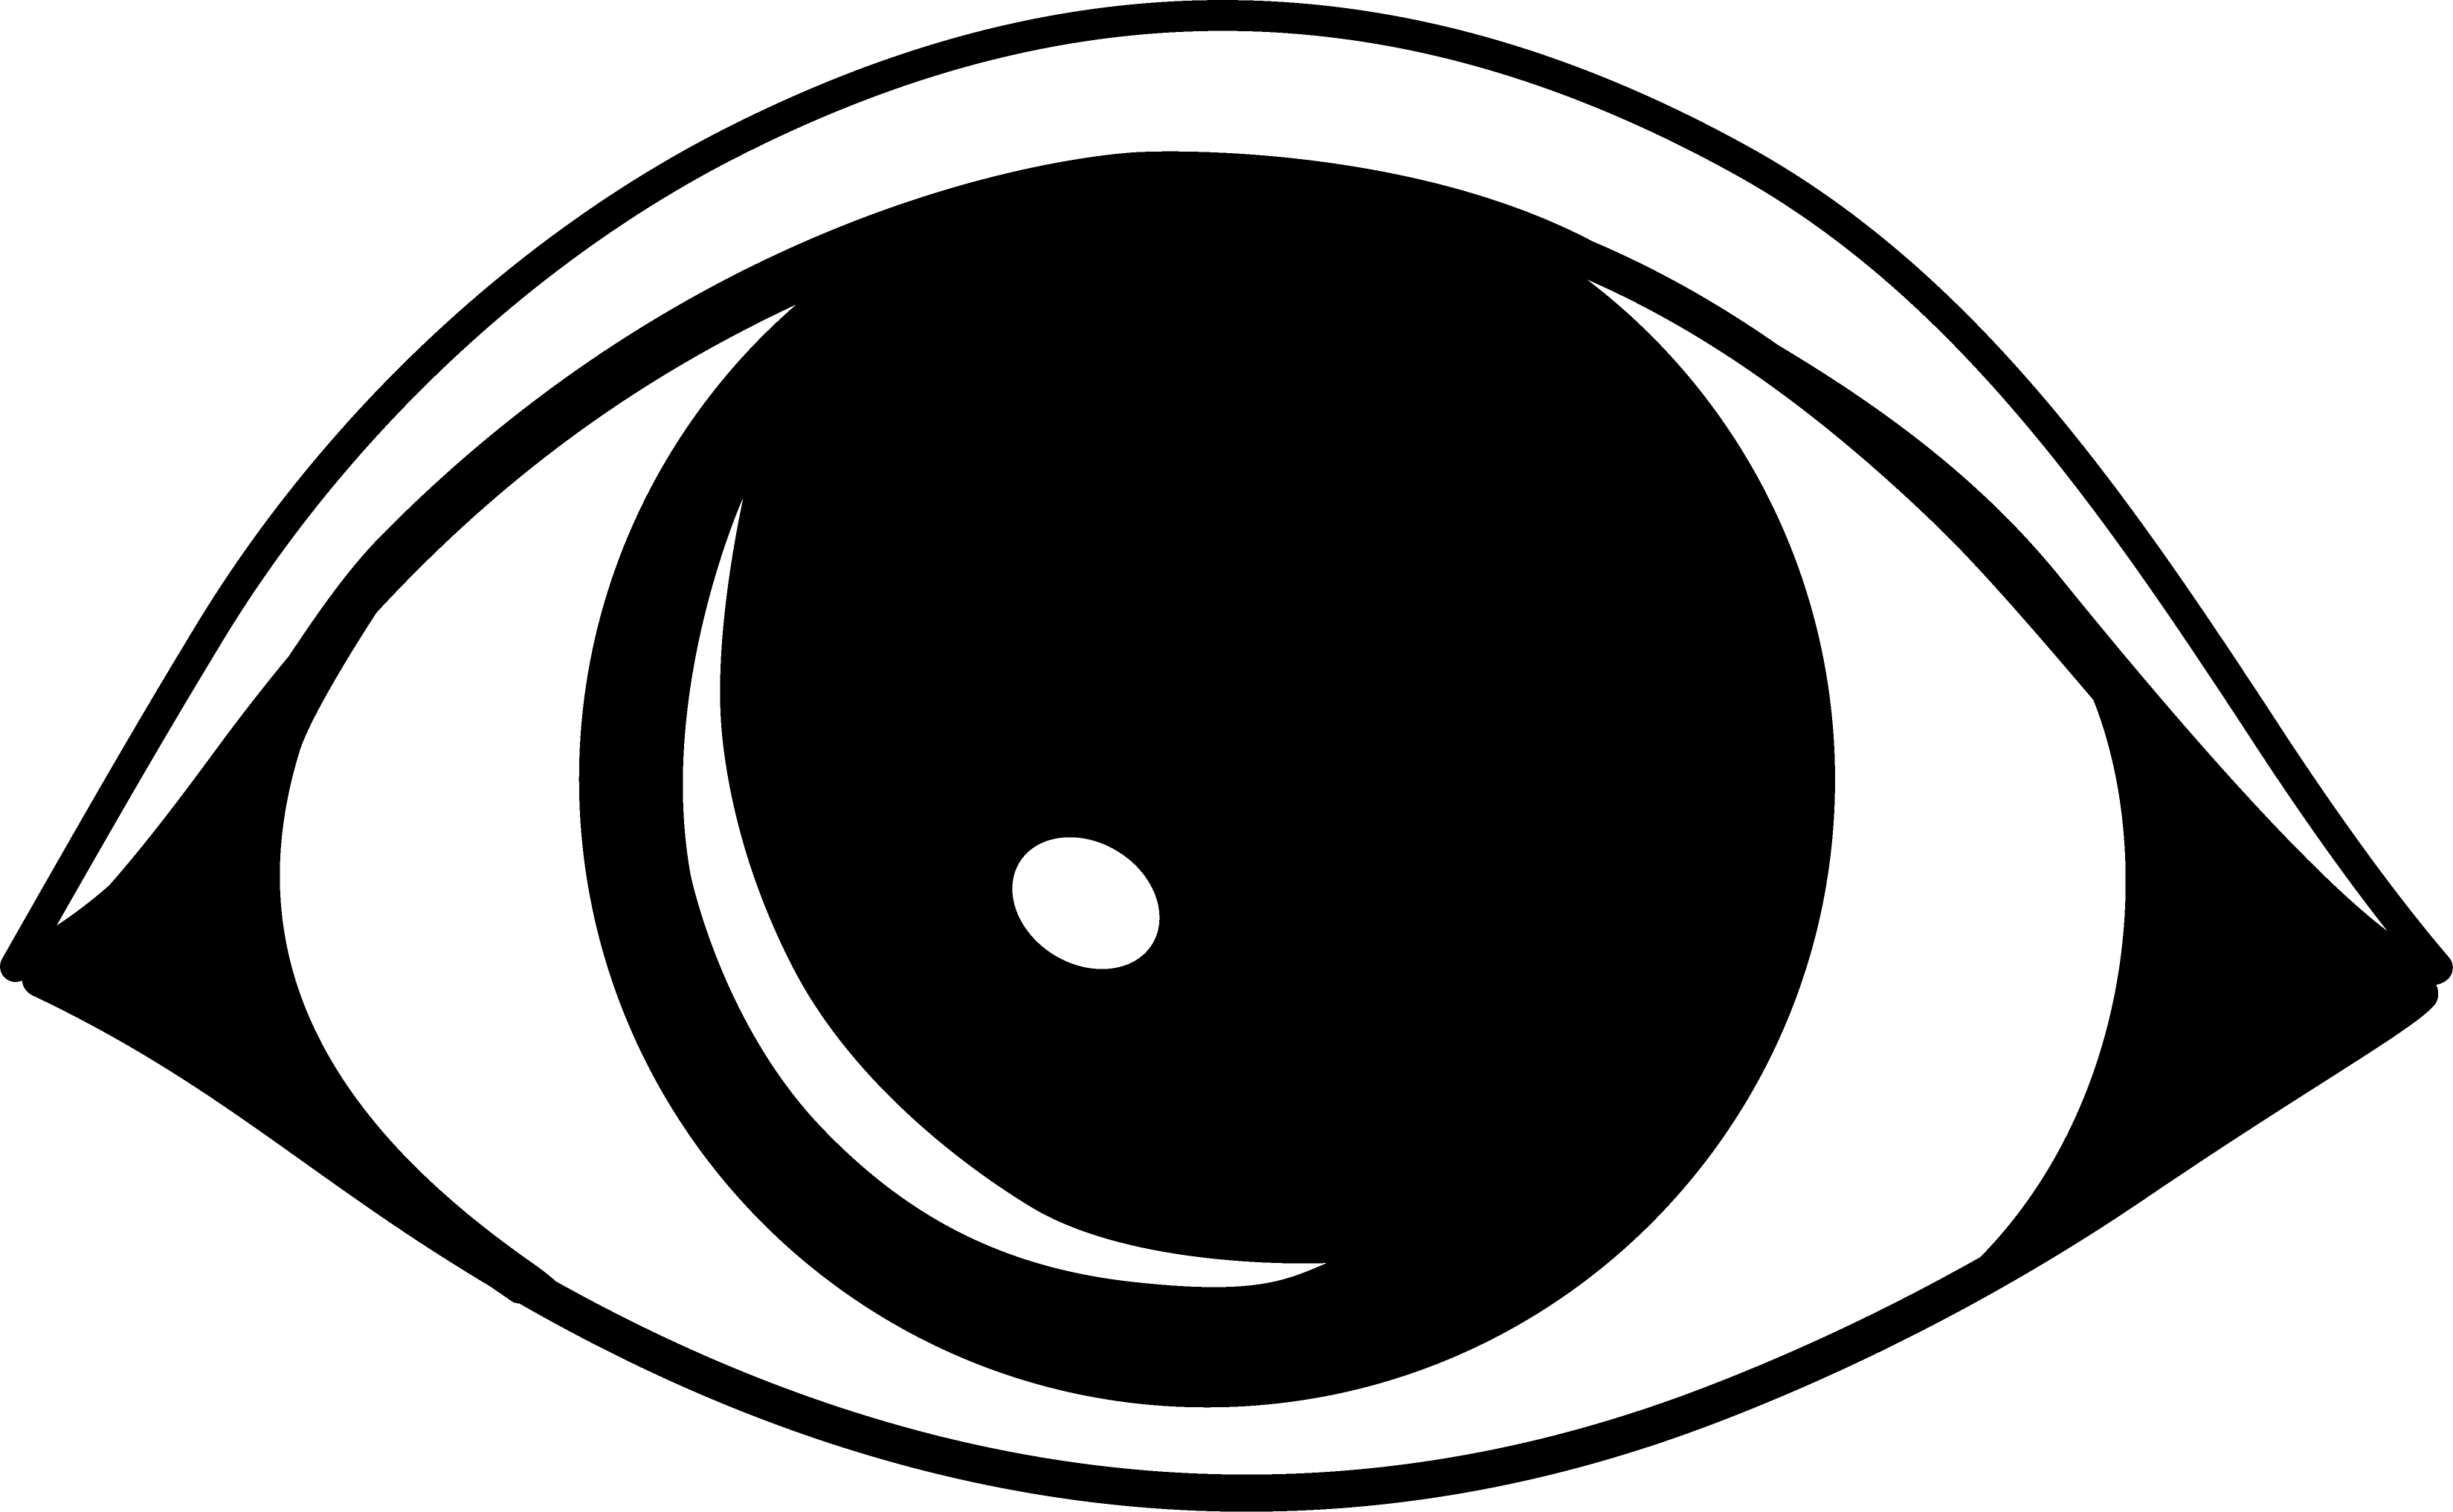 Eye and vision symbols vector by tachyglossus - Image #3472858 ...